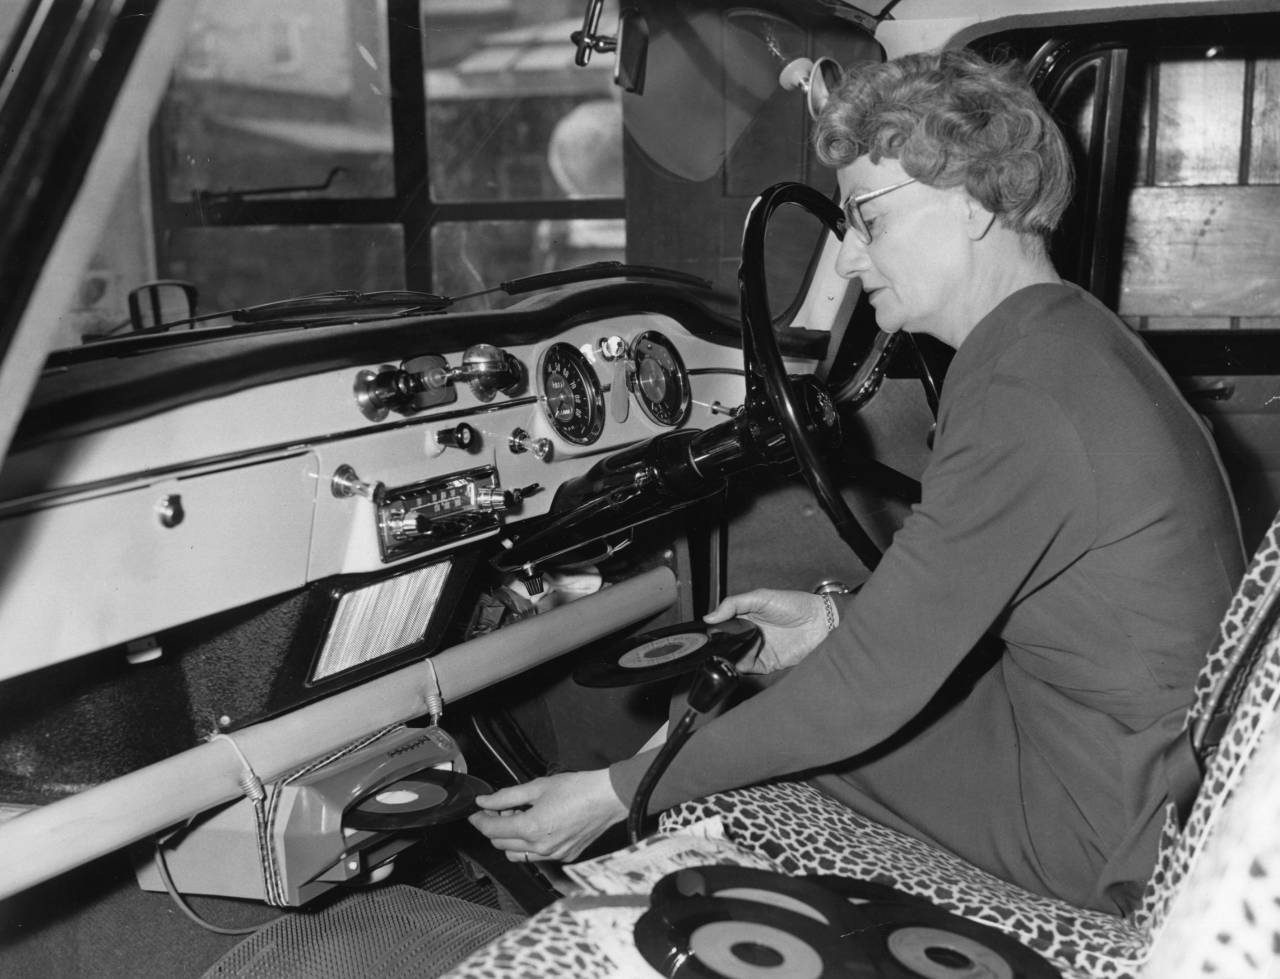 Mrs Batt inserting a record into the front of her in-car record player. The music is fed into the car radio speaker system. (Photo by Fox Photos/Getty Images)